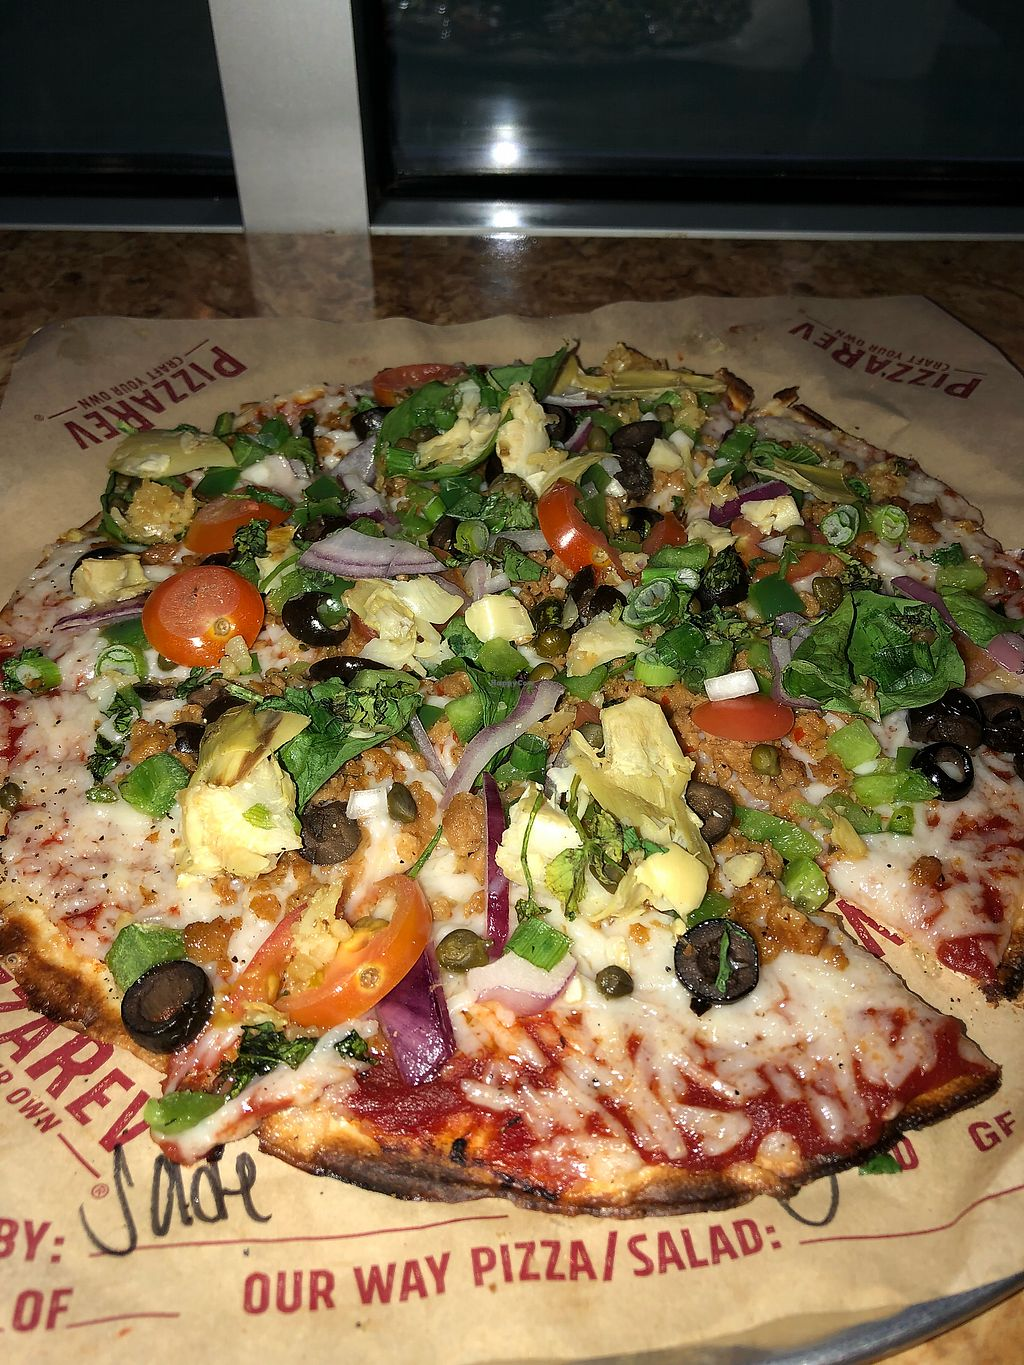 """Photo of PizzaRev  by <a href=""""/members/profile/Jadediana"""">Jadediana</a> <br/>Vegan pizza w/ cheese, sausage, veggies <br/> April 14, 2018  - <a href='/contact/abuse/image/116840/385513'>Report</a>"""